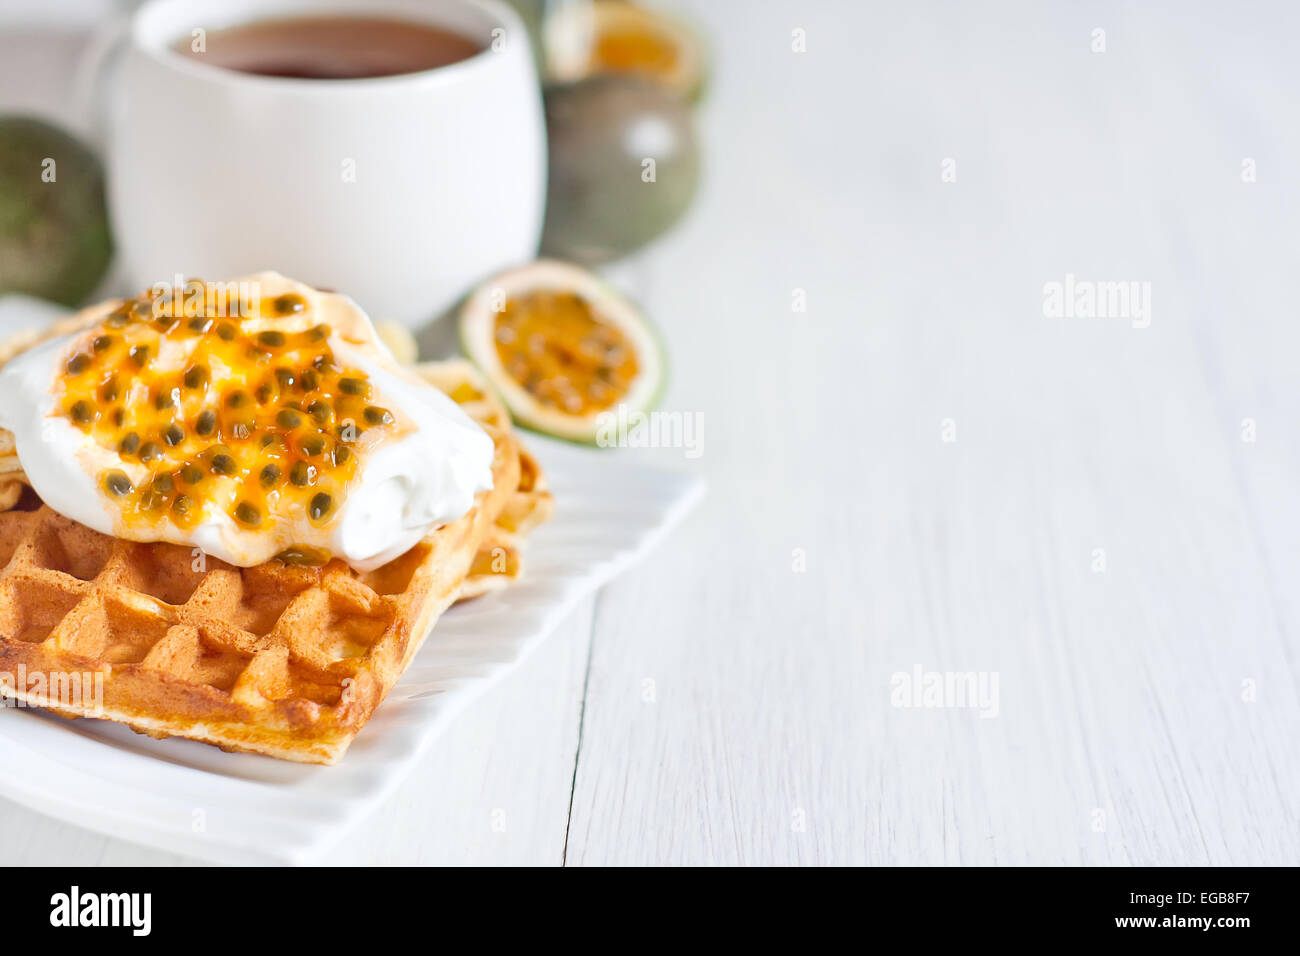 Homemade belgian waffles with cream and passionfruit pulp. Selective focus. Copyspace background. - Stock Image